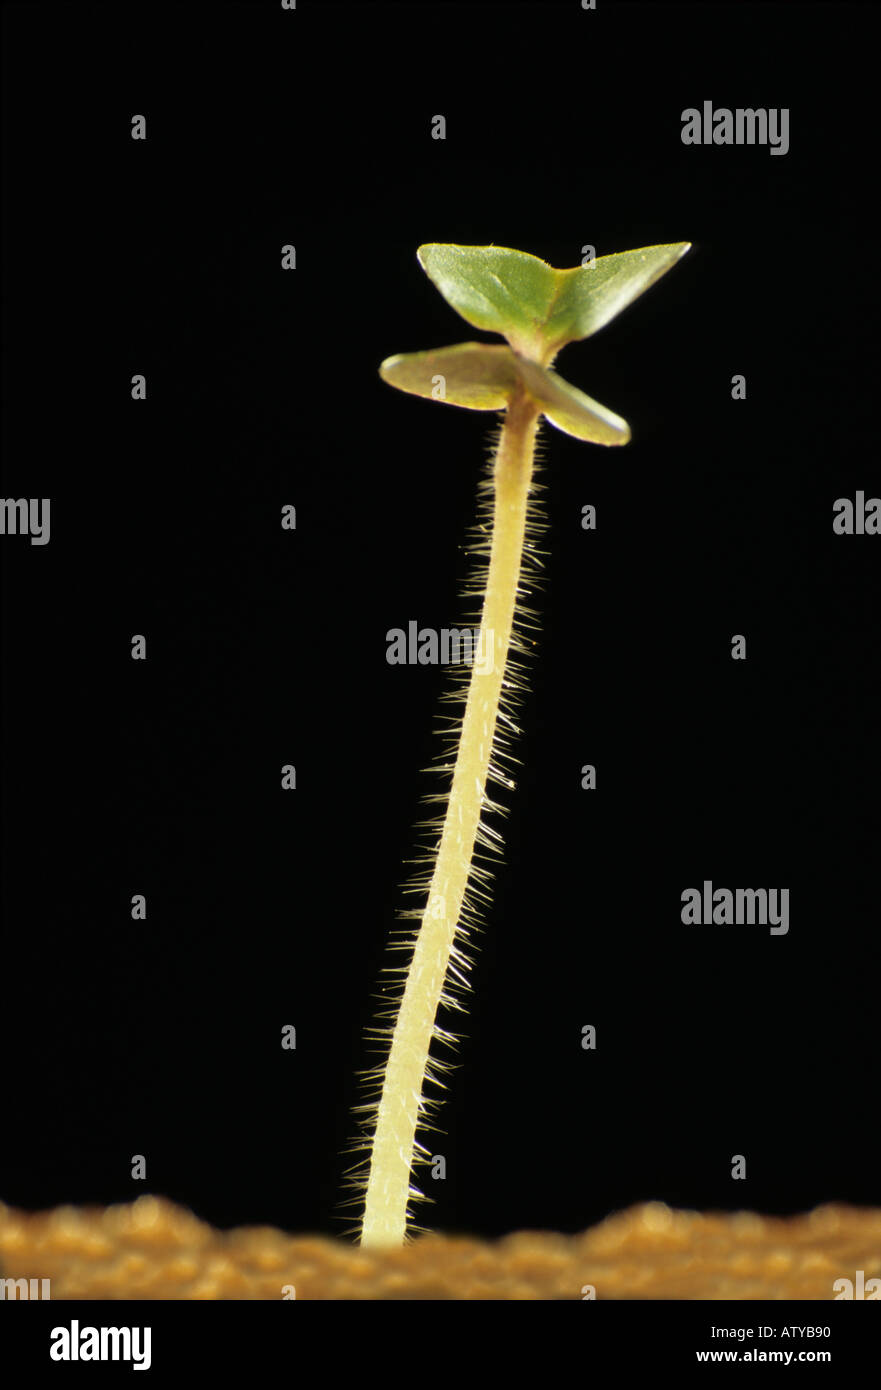 1 tiny mustard seedling with the first pair of seed leaves stands in sand against a black background - Stock Image